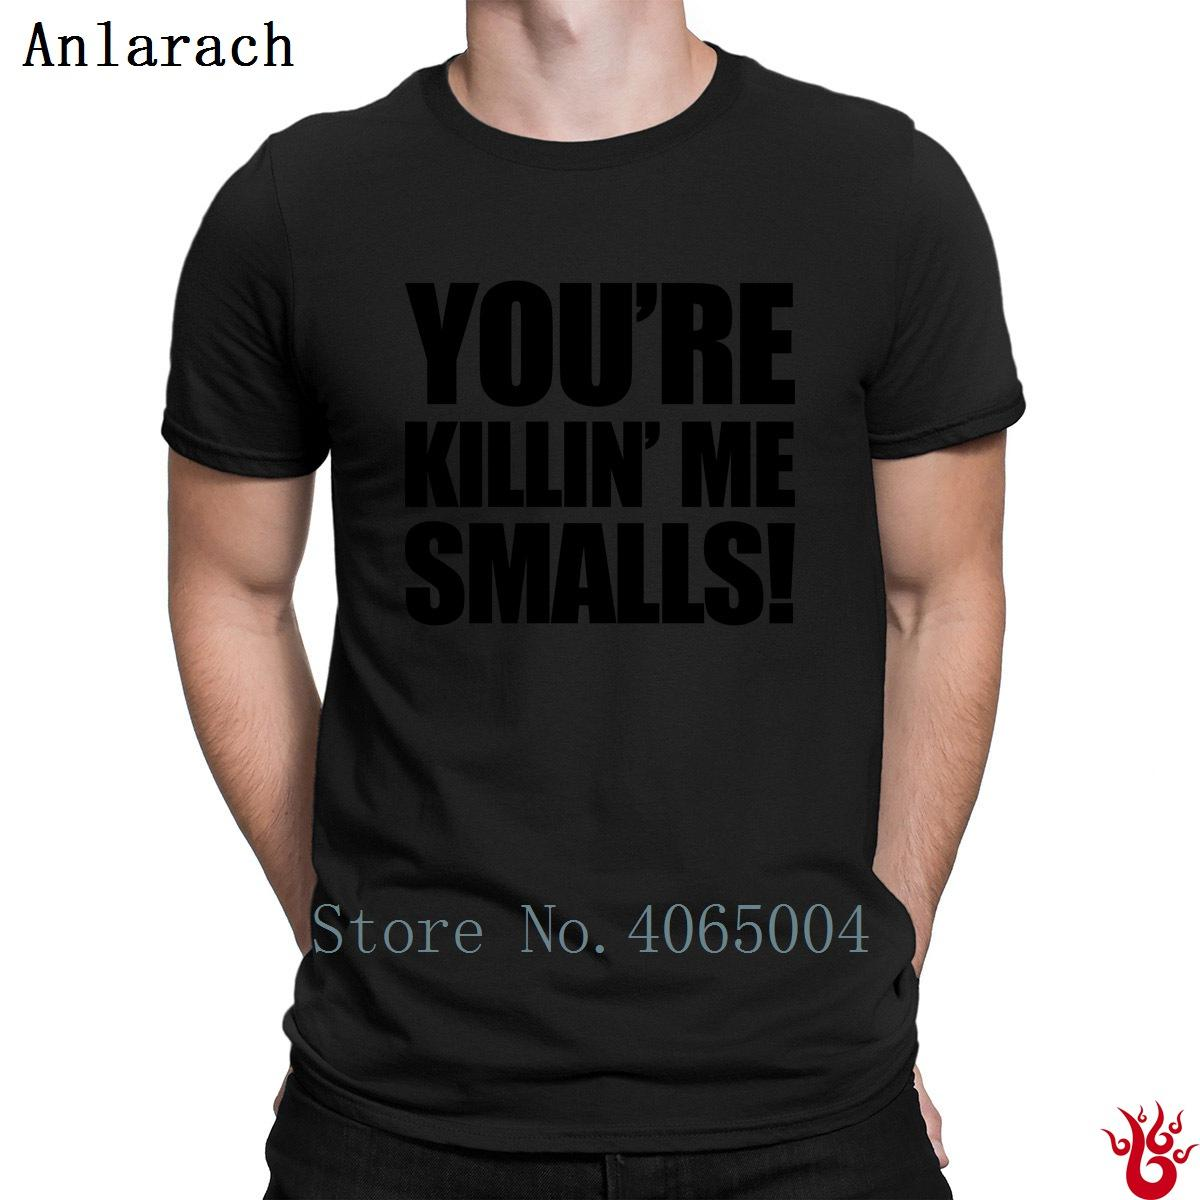 3f4925b8a You Are Killin Me Smalls Tshirts Letter Custom Crew Neck Vintage T Shirt  For Men 2018 Short Sleeve Graphic Funny Hiphop Tops Random Graphic Tees  Quirky T ...